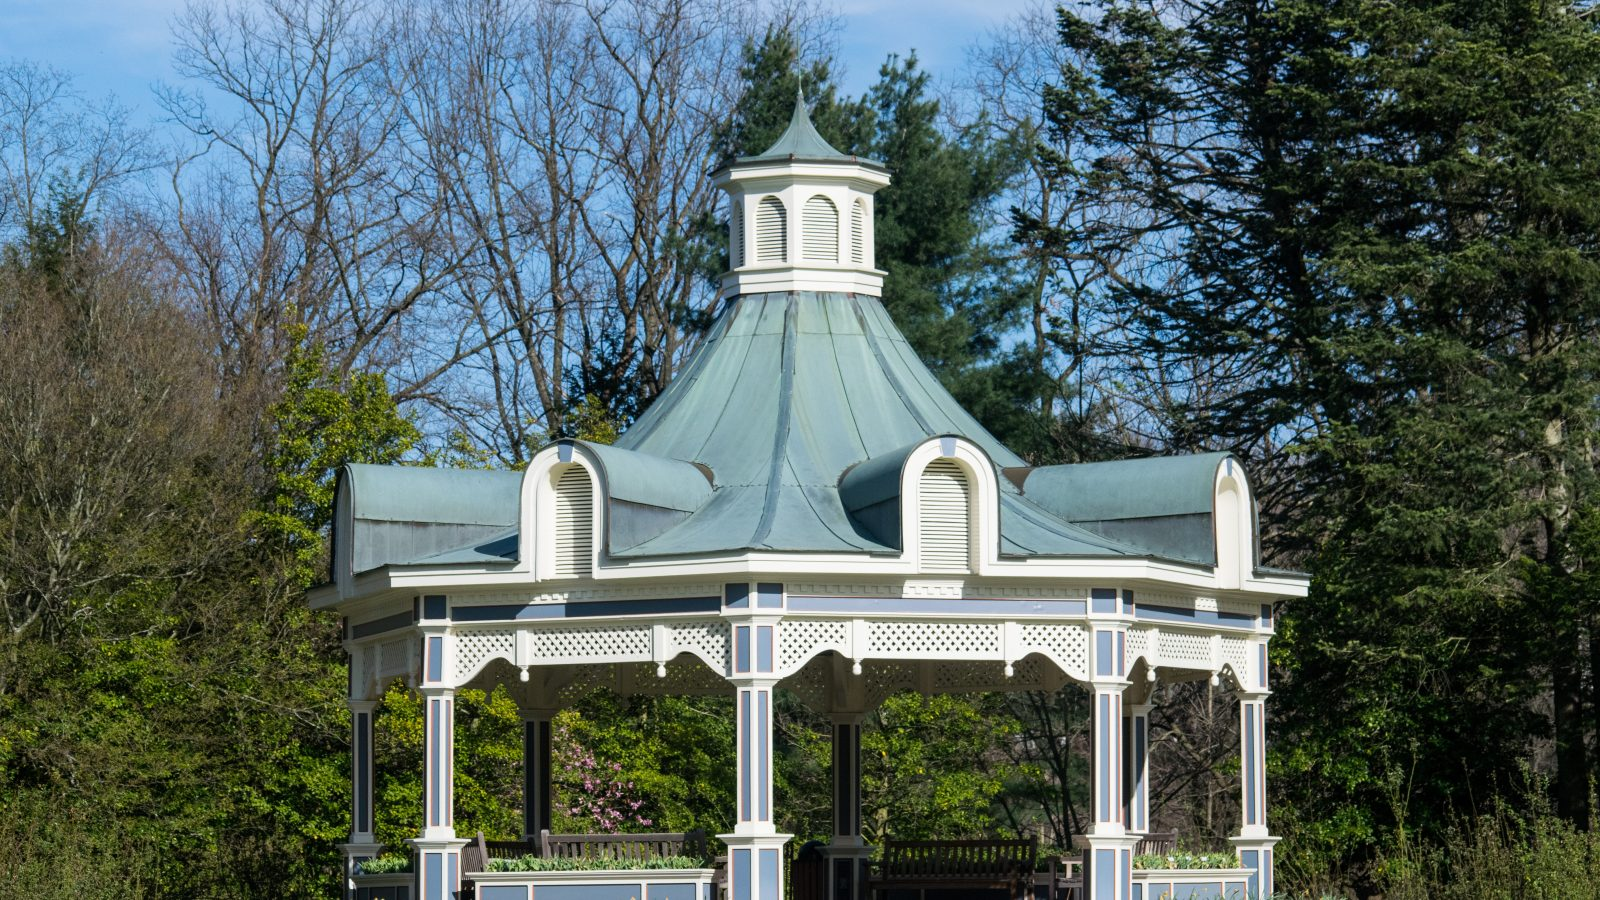 This beautiful gazebo is located in Fellows Riverside Gardens in Mill Creek Park